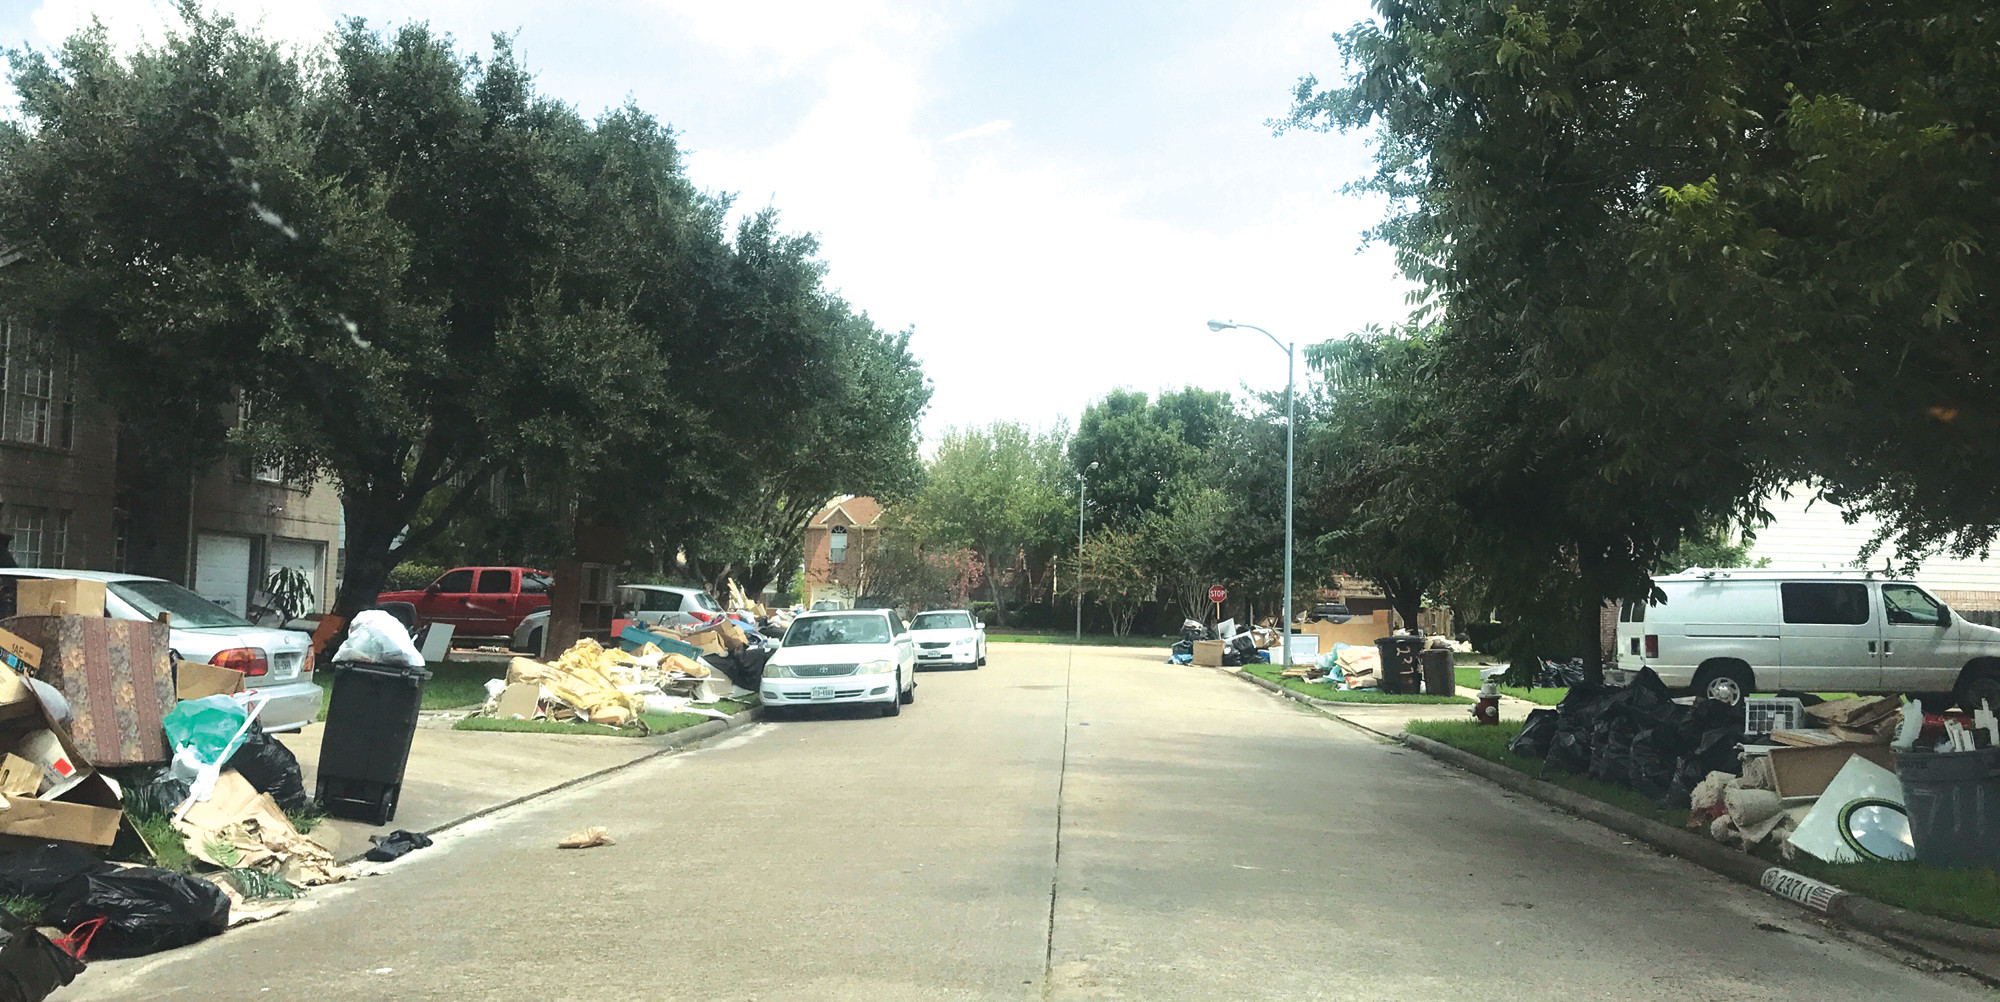 A COMMON SIGHT: Street after street features homes with debris scattered on the sidewalk, according to Robinson.